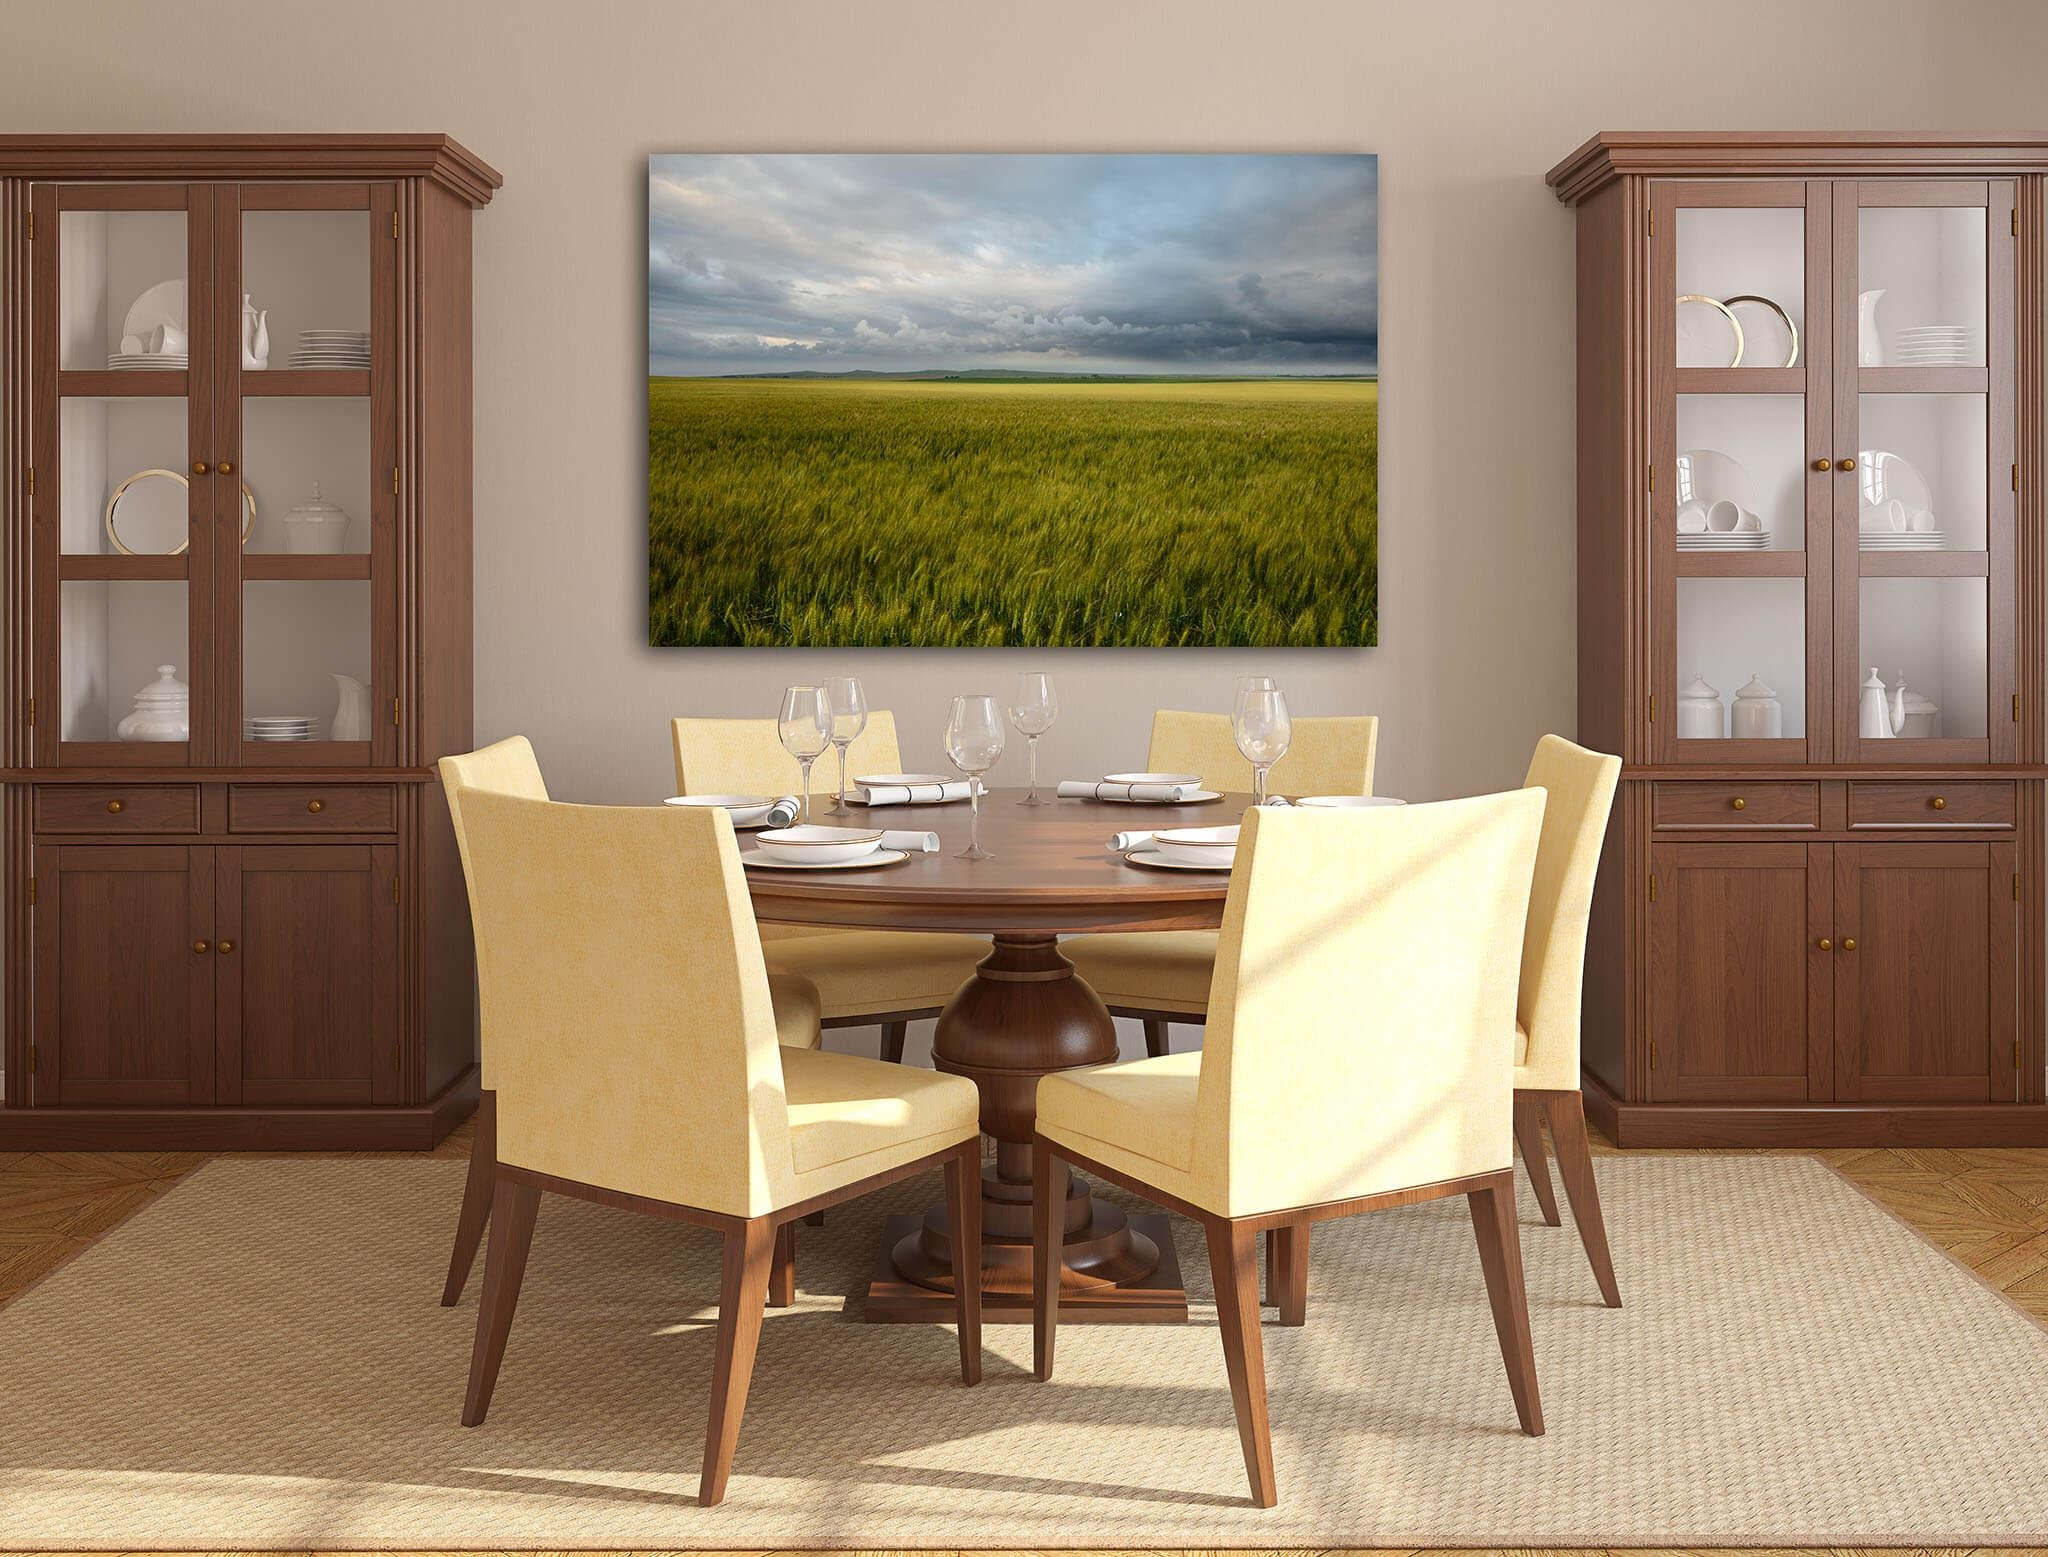 Kitchen & Dining Room Wall Art Ideas – Franklin Arts Throughout Art For Dining Room Walls (View 9 of 20)